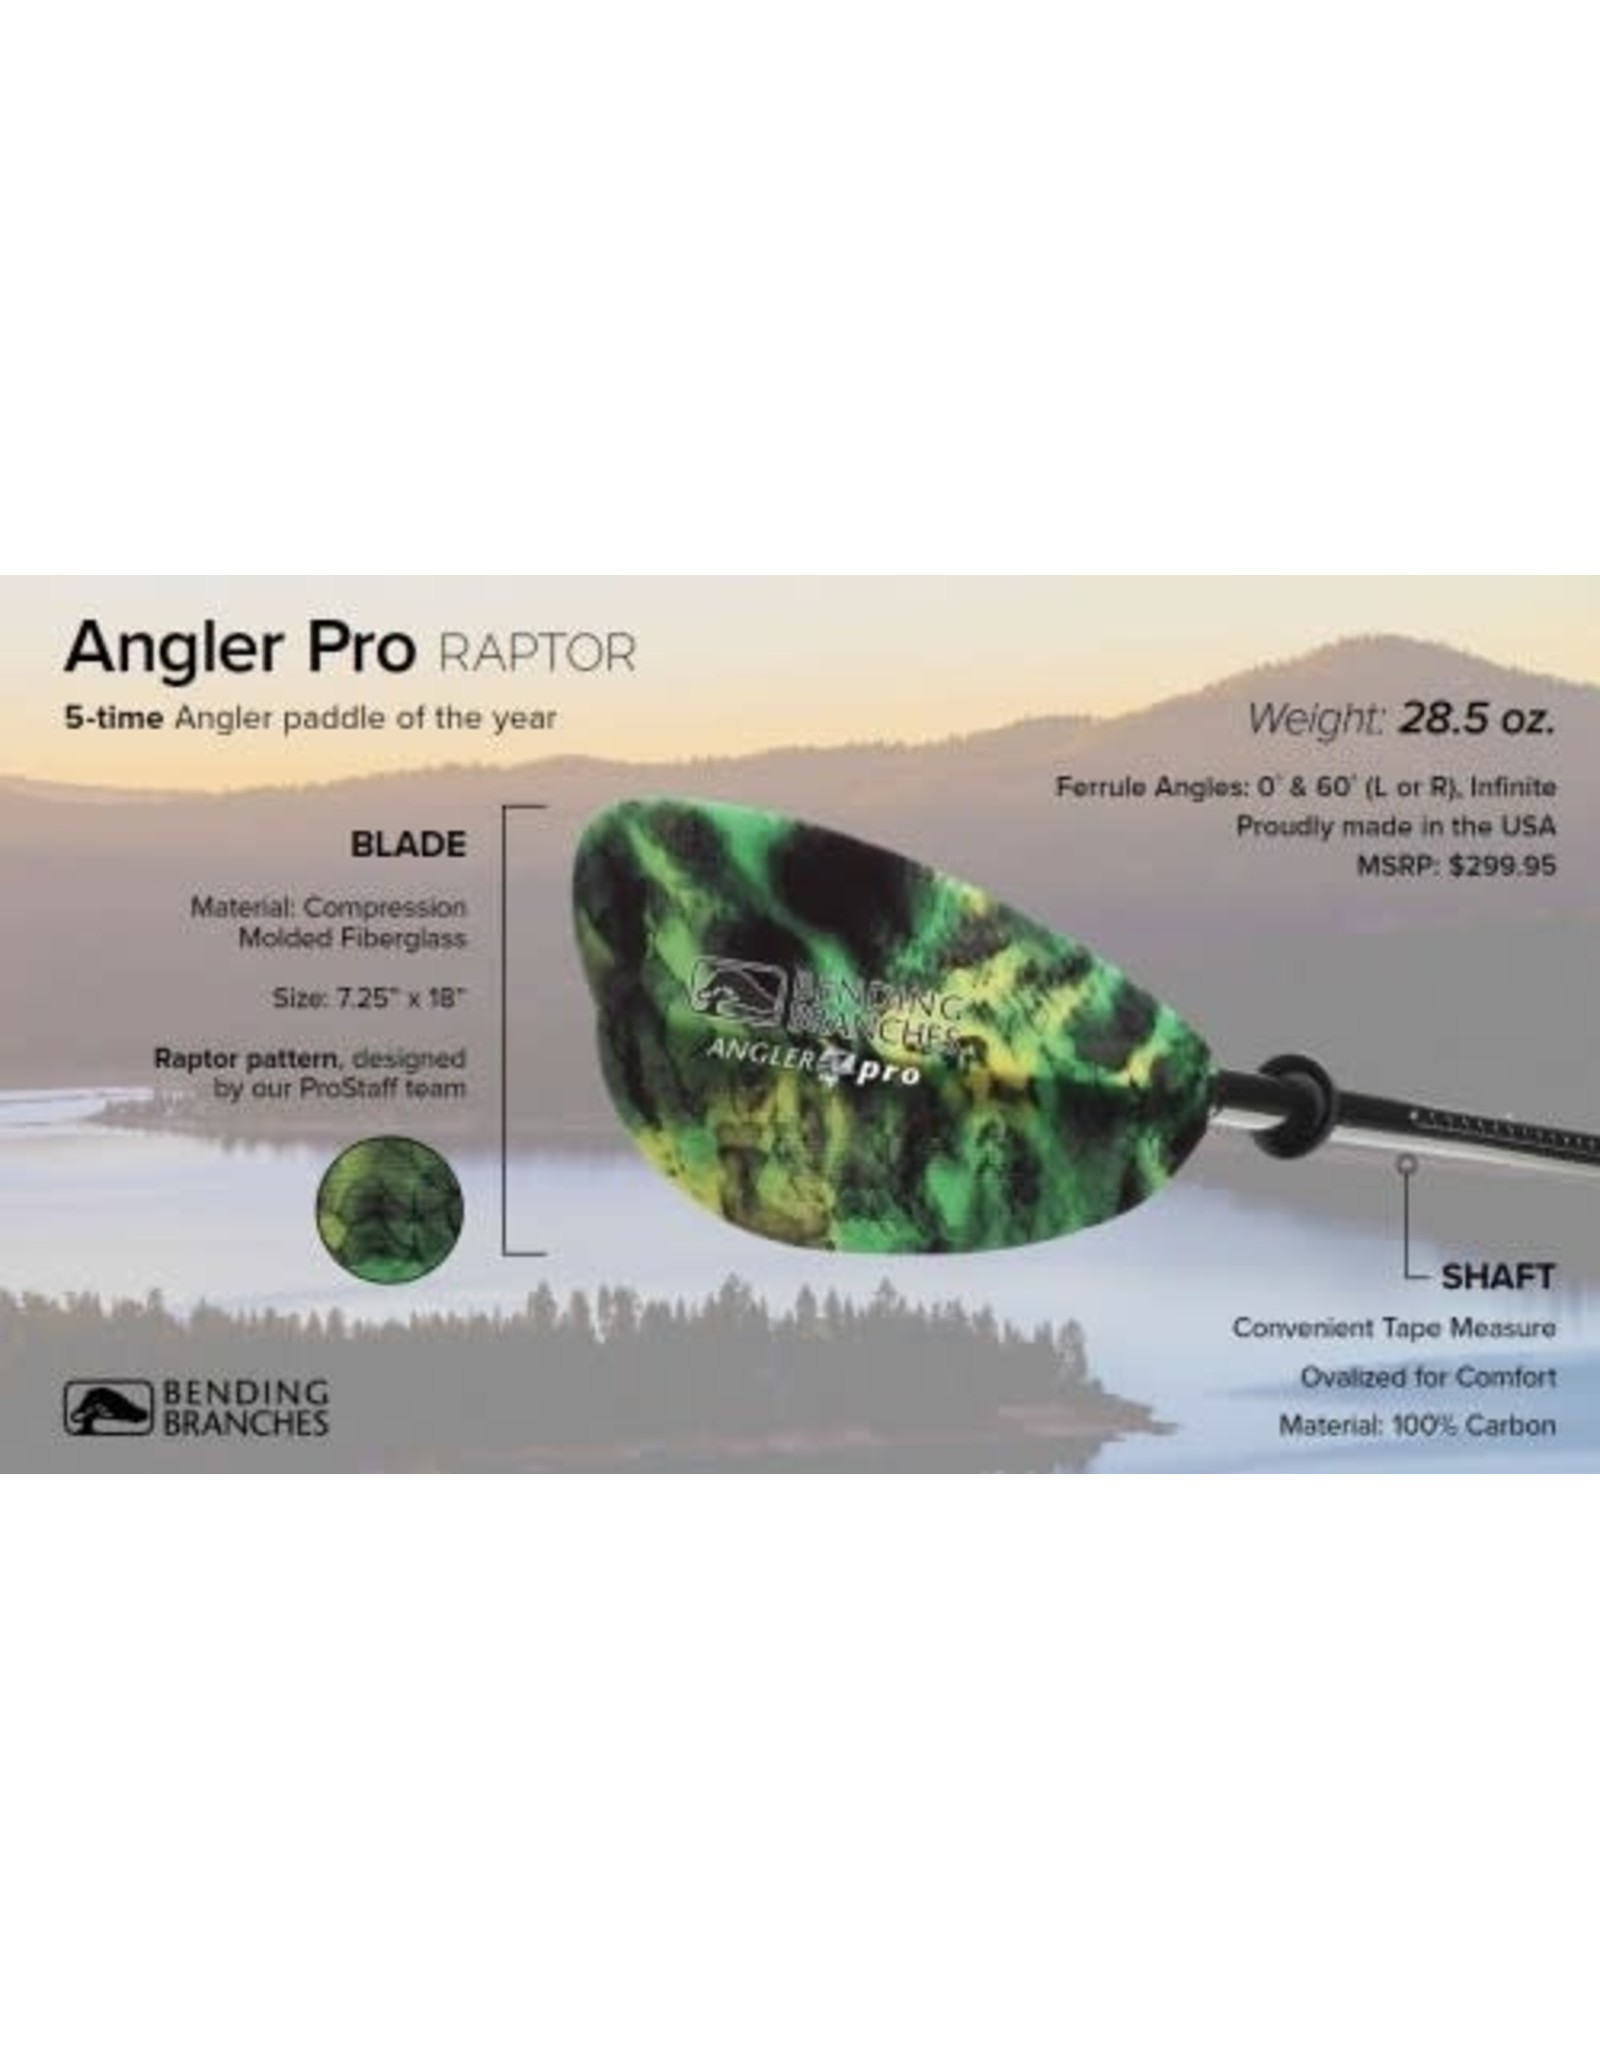 Bending Branches Bending Branches paddle Angler Pro